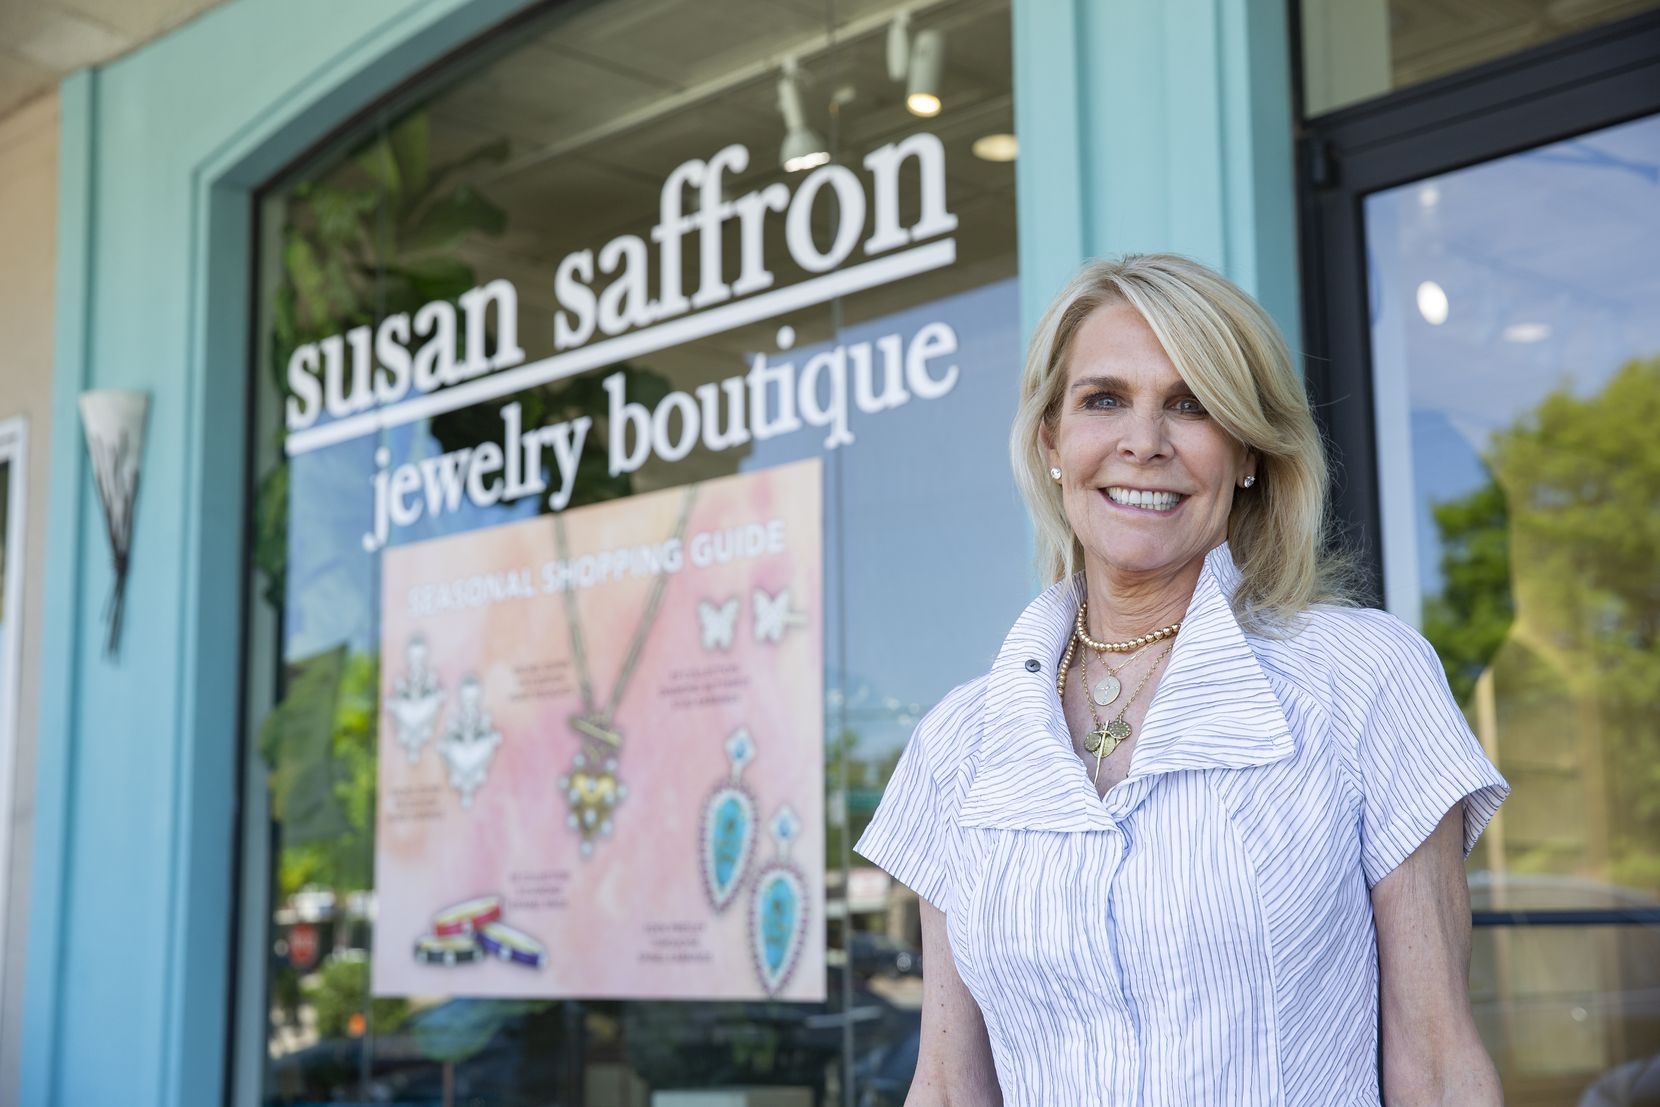 Susan Saffron is ready to open her business in Inwood Village.